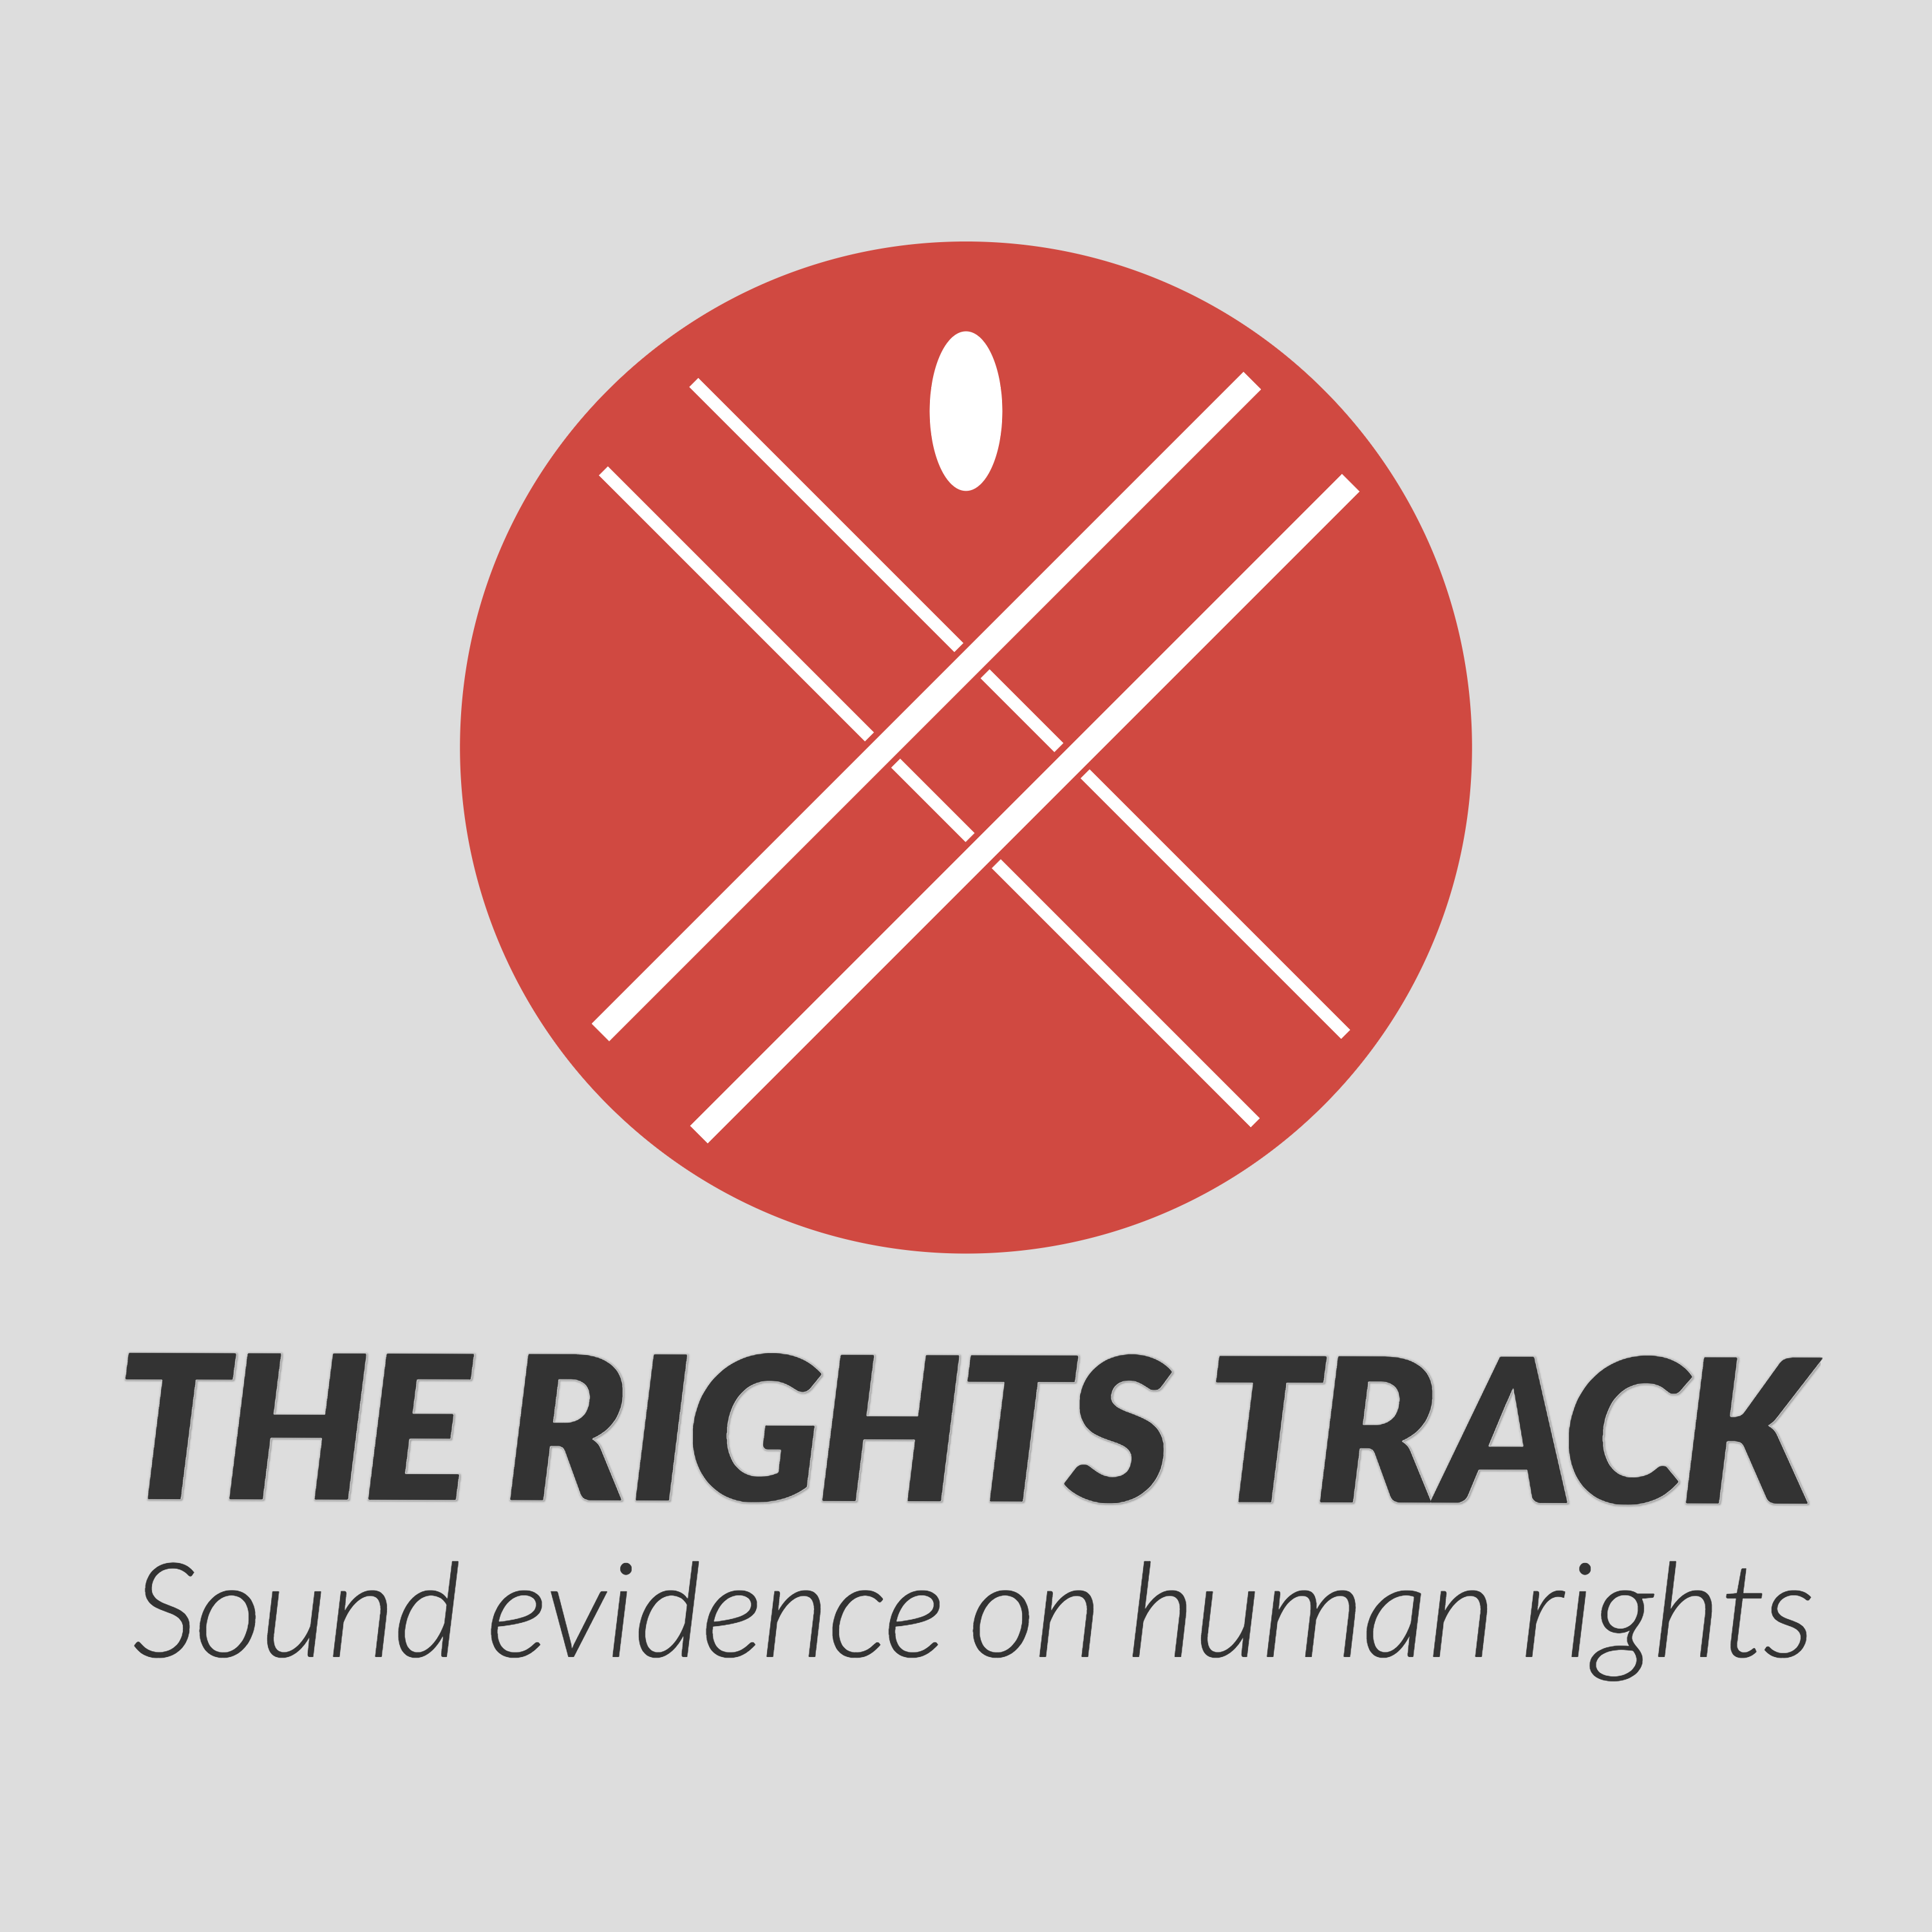 The Rights Track